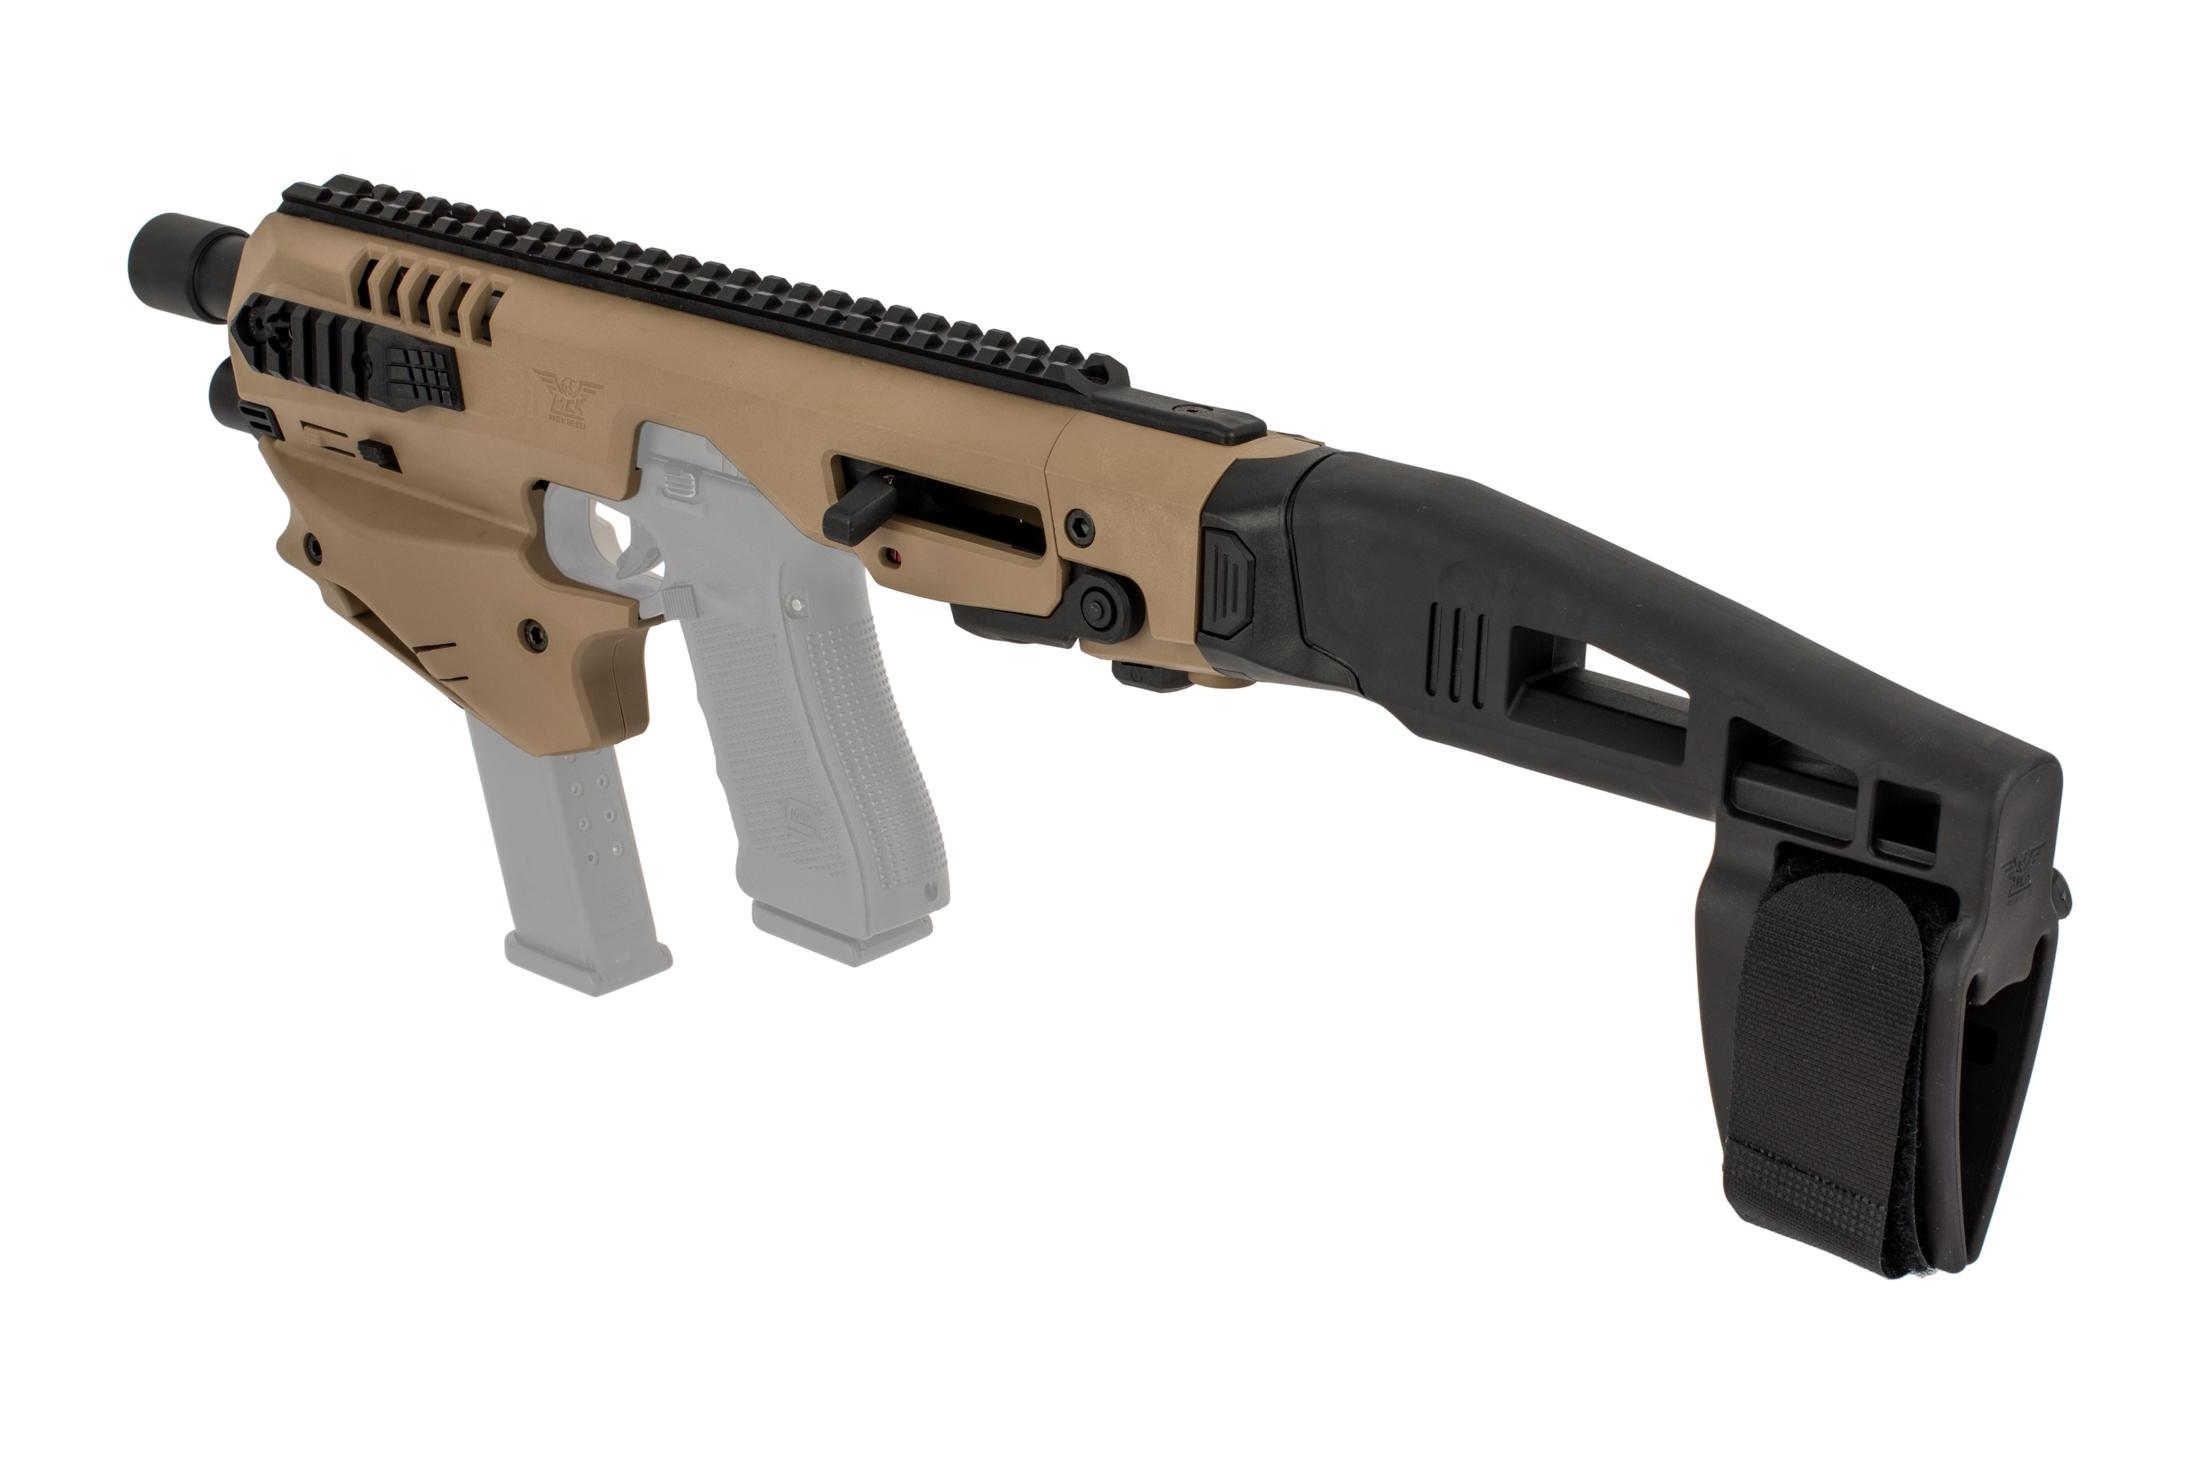 Command Arms Micro Conversion Kit with a stabilizer, ambidextrous controls, and improves accuracy out to 200 yards with flat dark earth finish